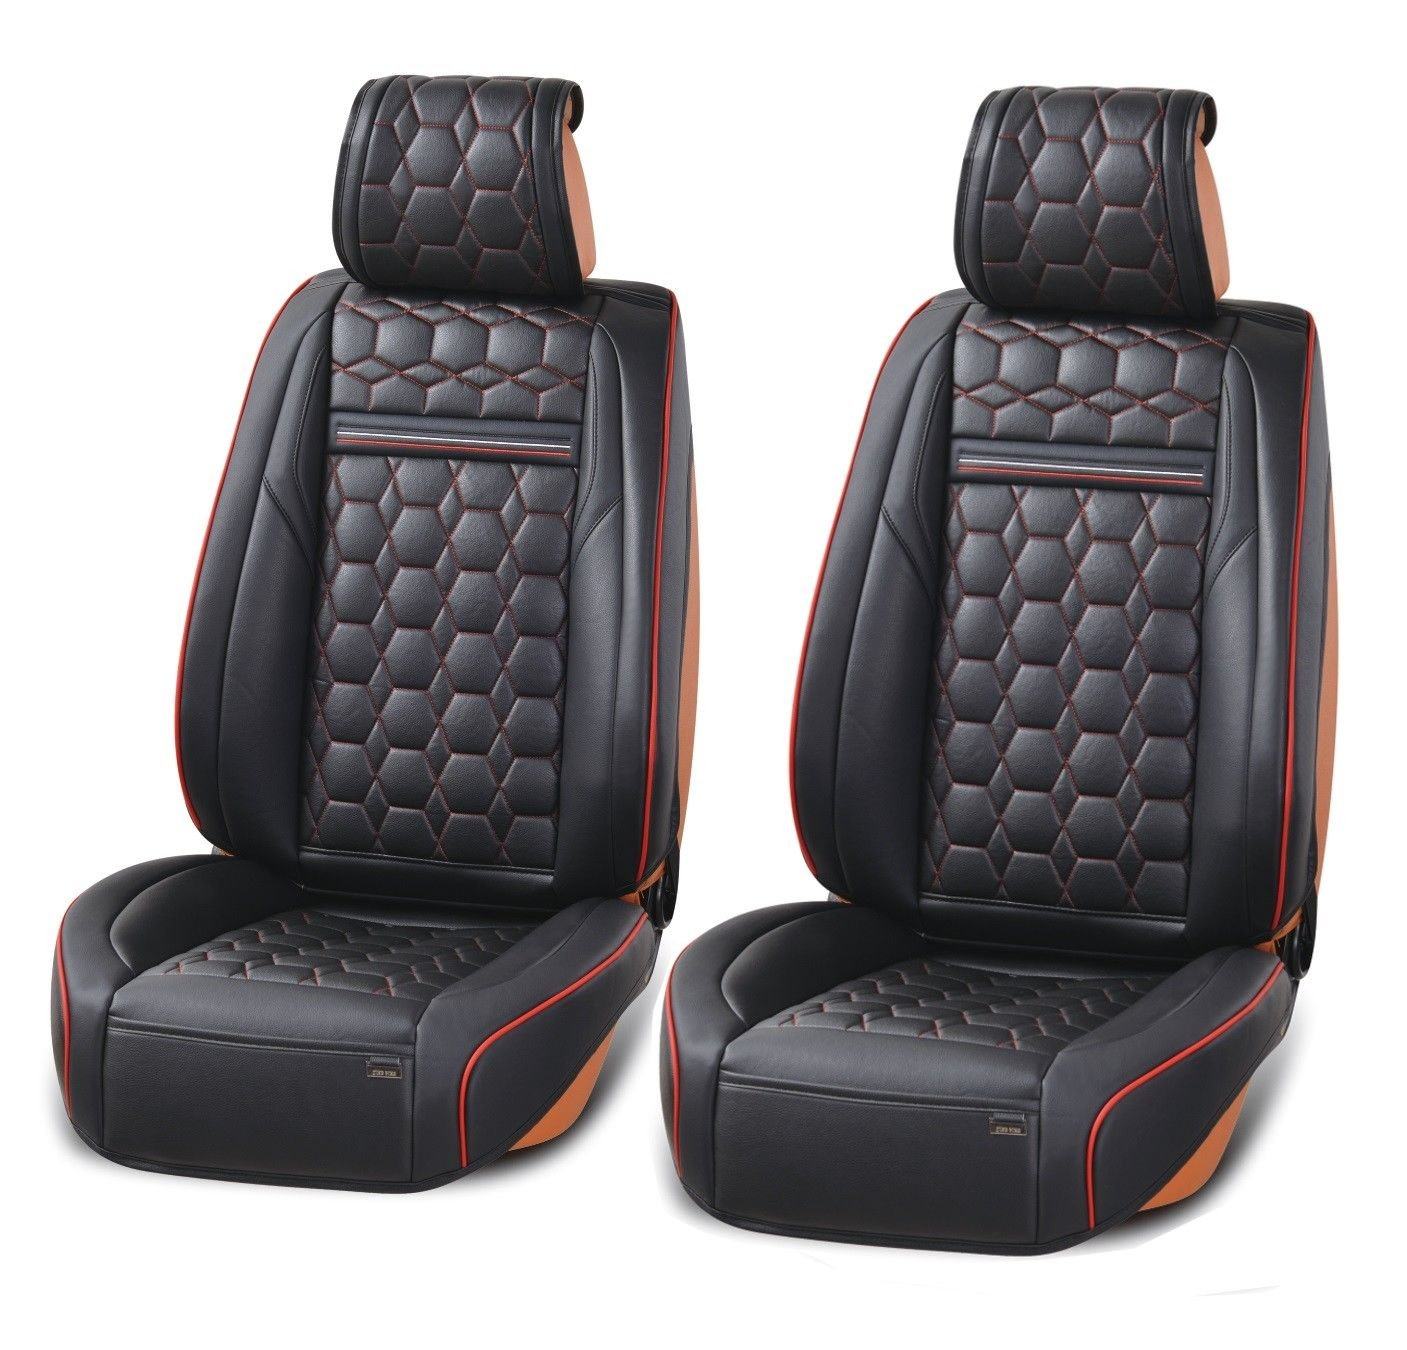 Deluxe Black PU Leather Front Seat Covers Cushion For Vauxhall